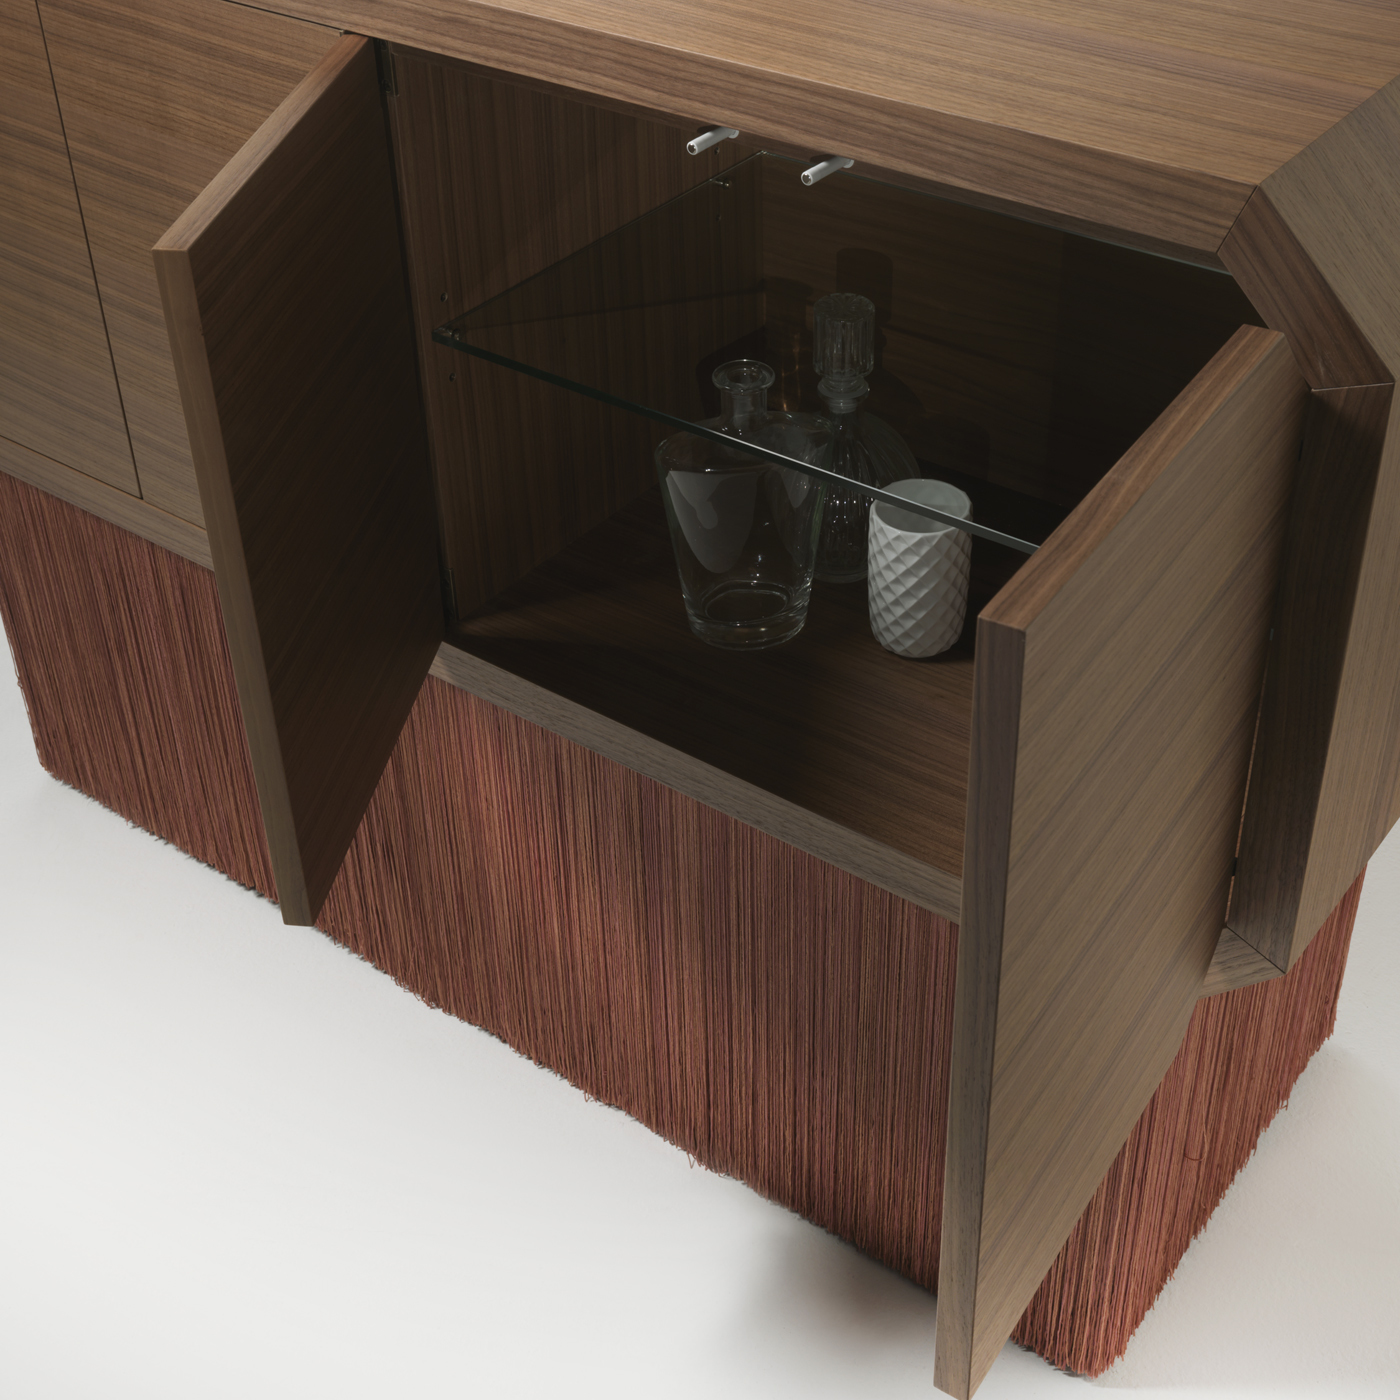 """Sipario Short Cabinet - The inspiration for the Sipario collection arises from a study about Italian theatres: a wooden semi cycle, perspectival off-stages and a deep scenery. Top cabinet is available in Oak or Walnut wood. The fringes are made using a technique called """"Tripolino"""". Other colour available for bespoke orders. 